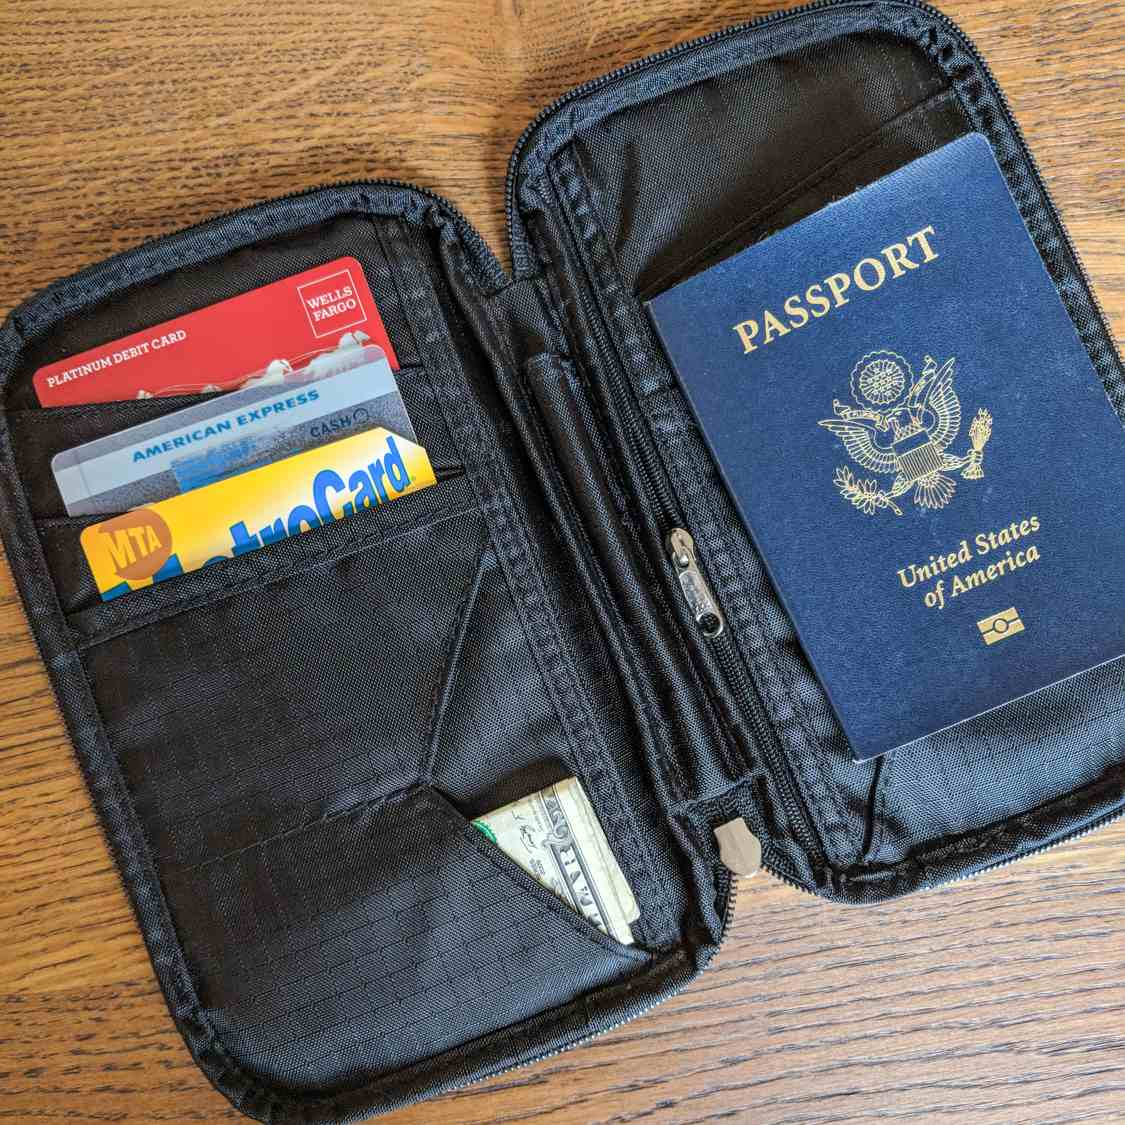 8e84f366b246 The 10 Best Passport Holders of 2019